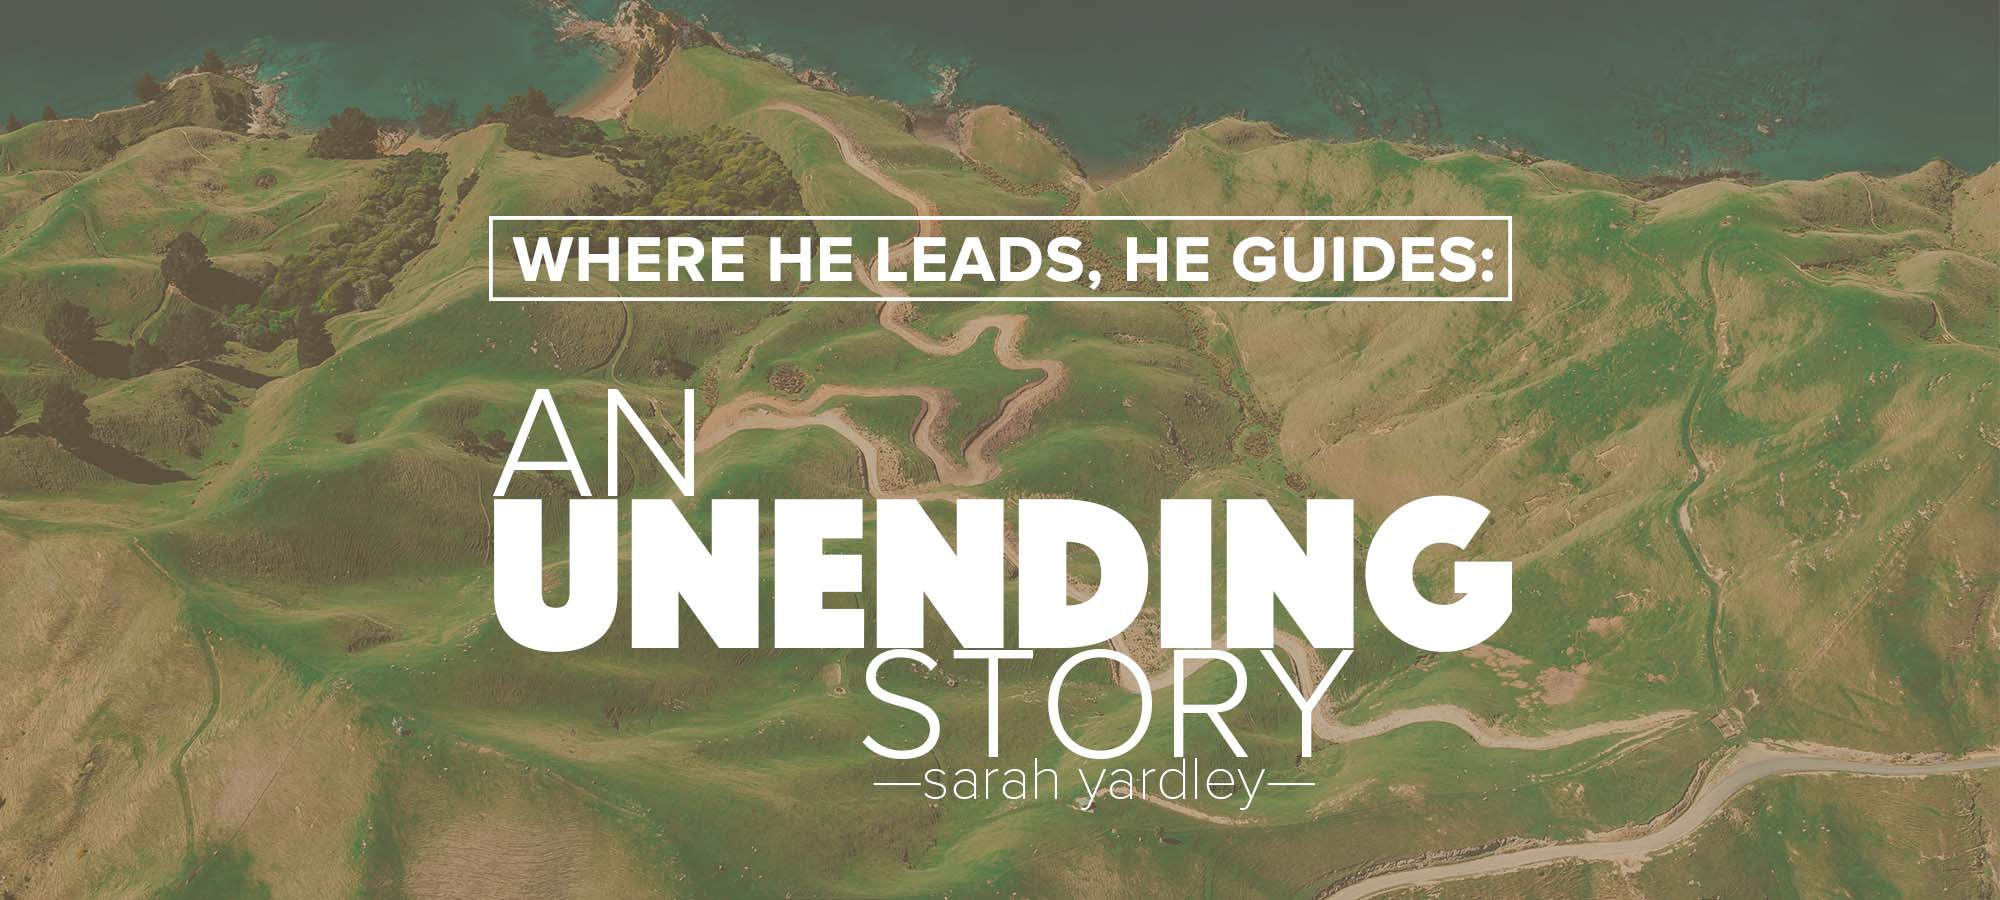 Where He Leads, He Guides: An Unending Story